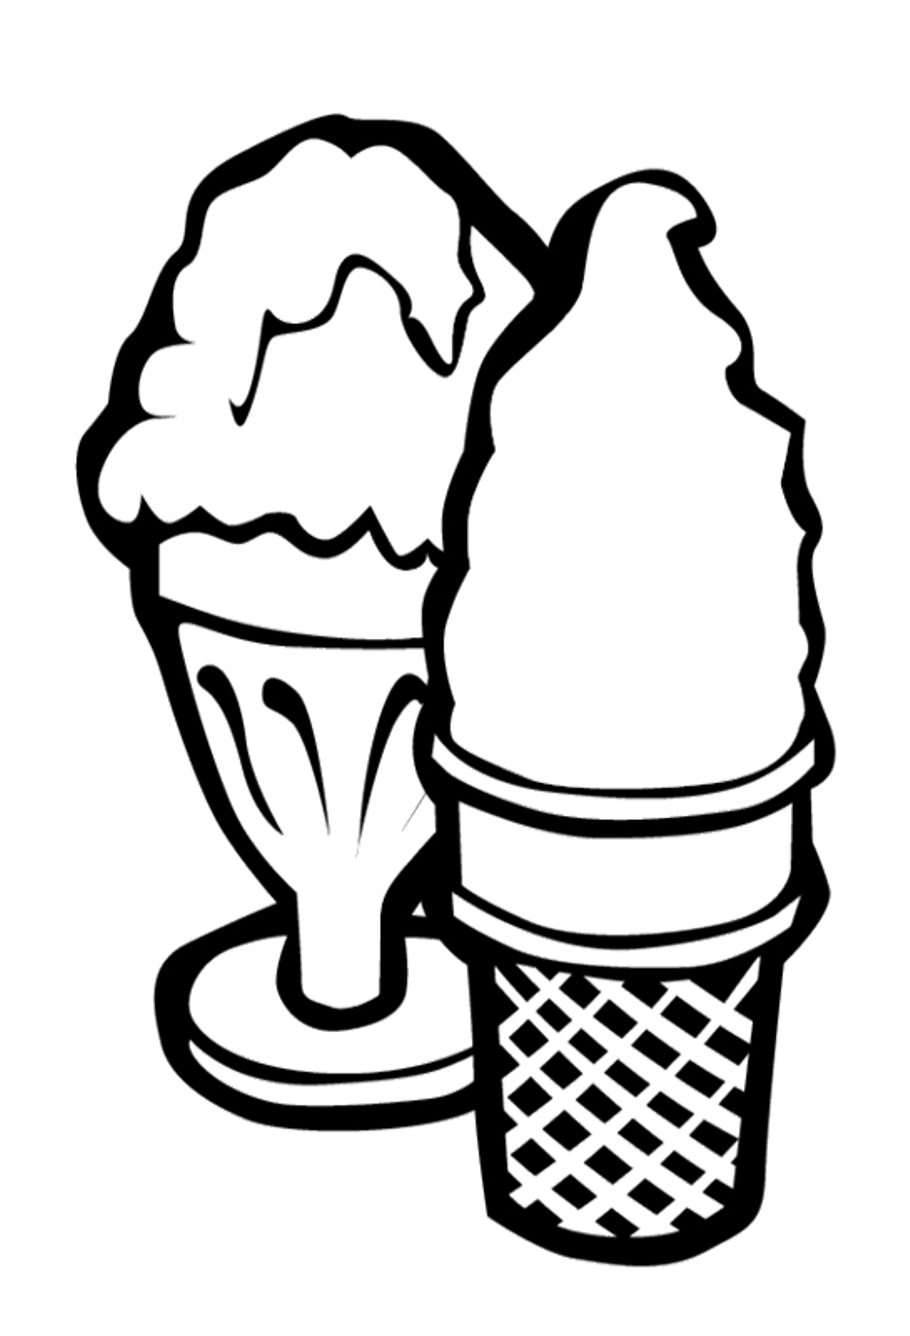 ice cream coloring template pin on printable coloring pages template cream coloring template ice